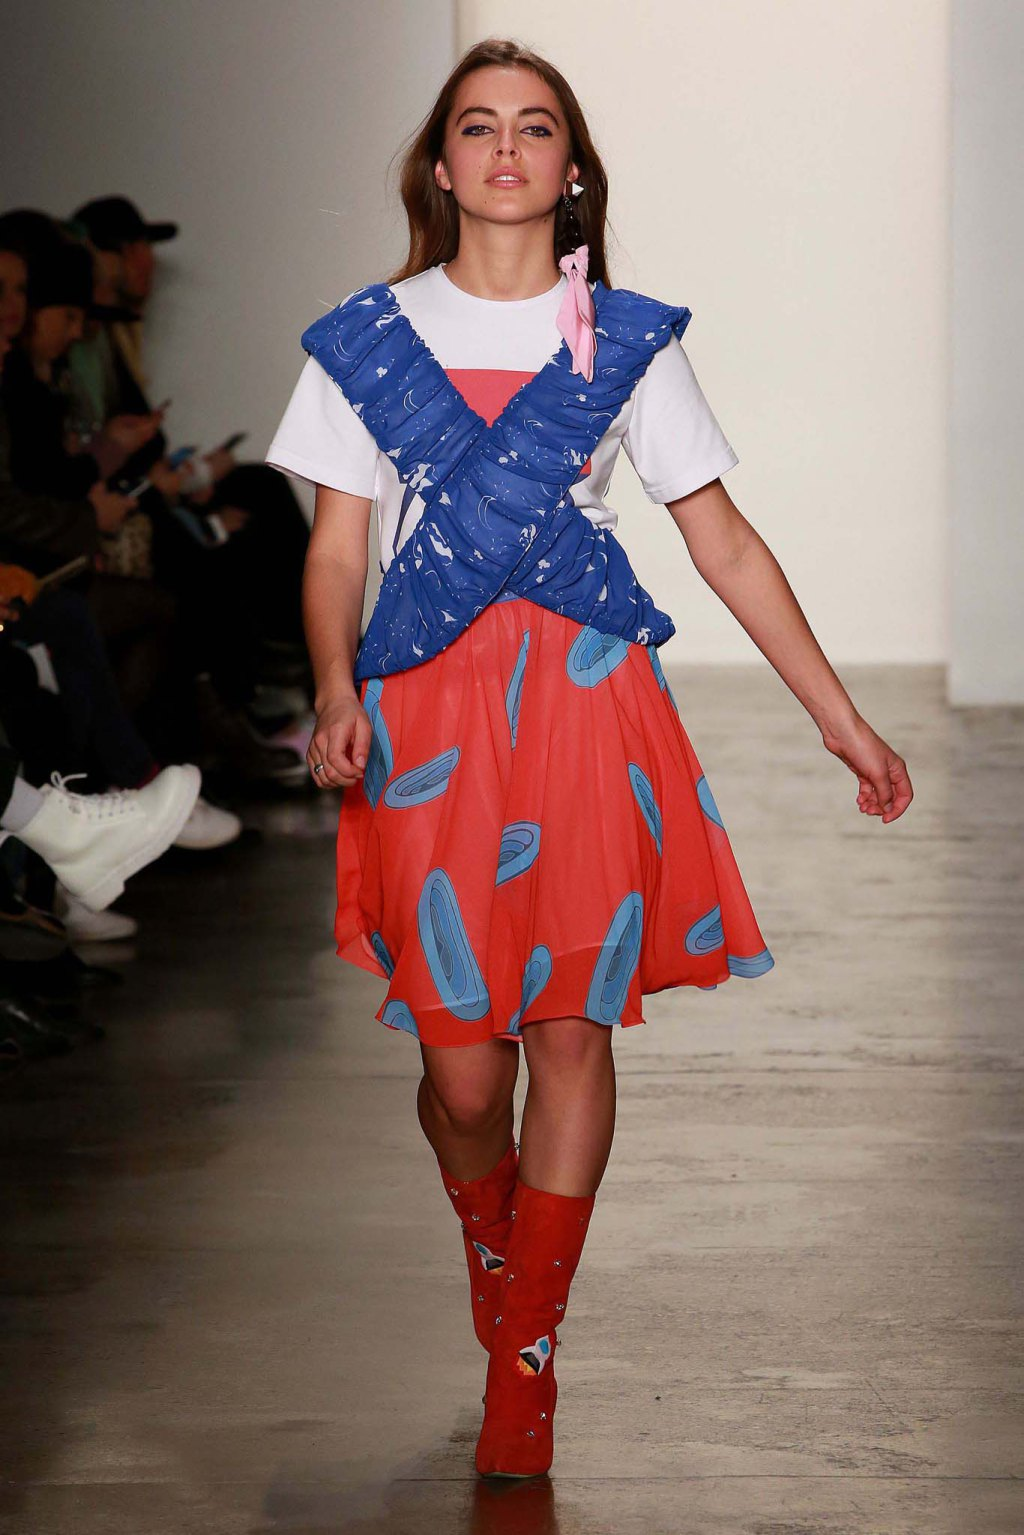 NYFW Anna K Fashion Show Fall Winter 2016 Louboutins & Love Fashion Blog Esther Santer NYC Street Style Models Collection Hair Makeup Dress Trendy Pretty Pattern Print Spaceship Fun Sneakers Shoes Blue Red Yellow Colorful Skirt Plaid Scarf Coat Outfit.jpg